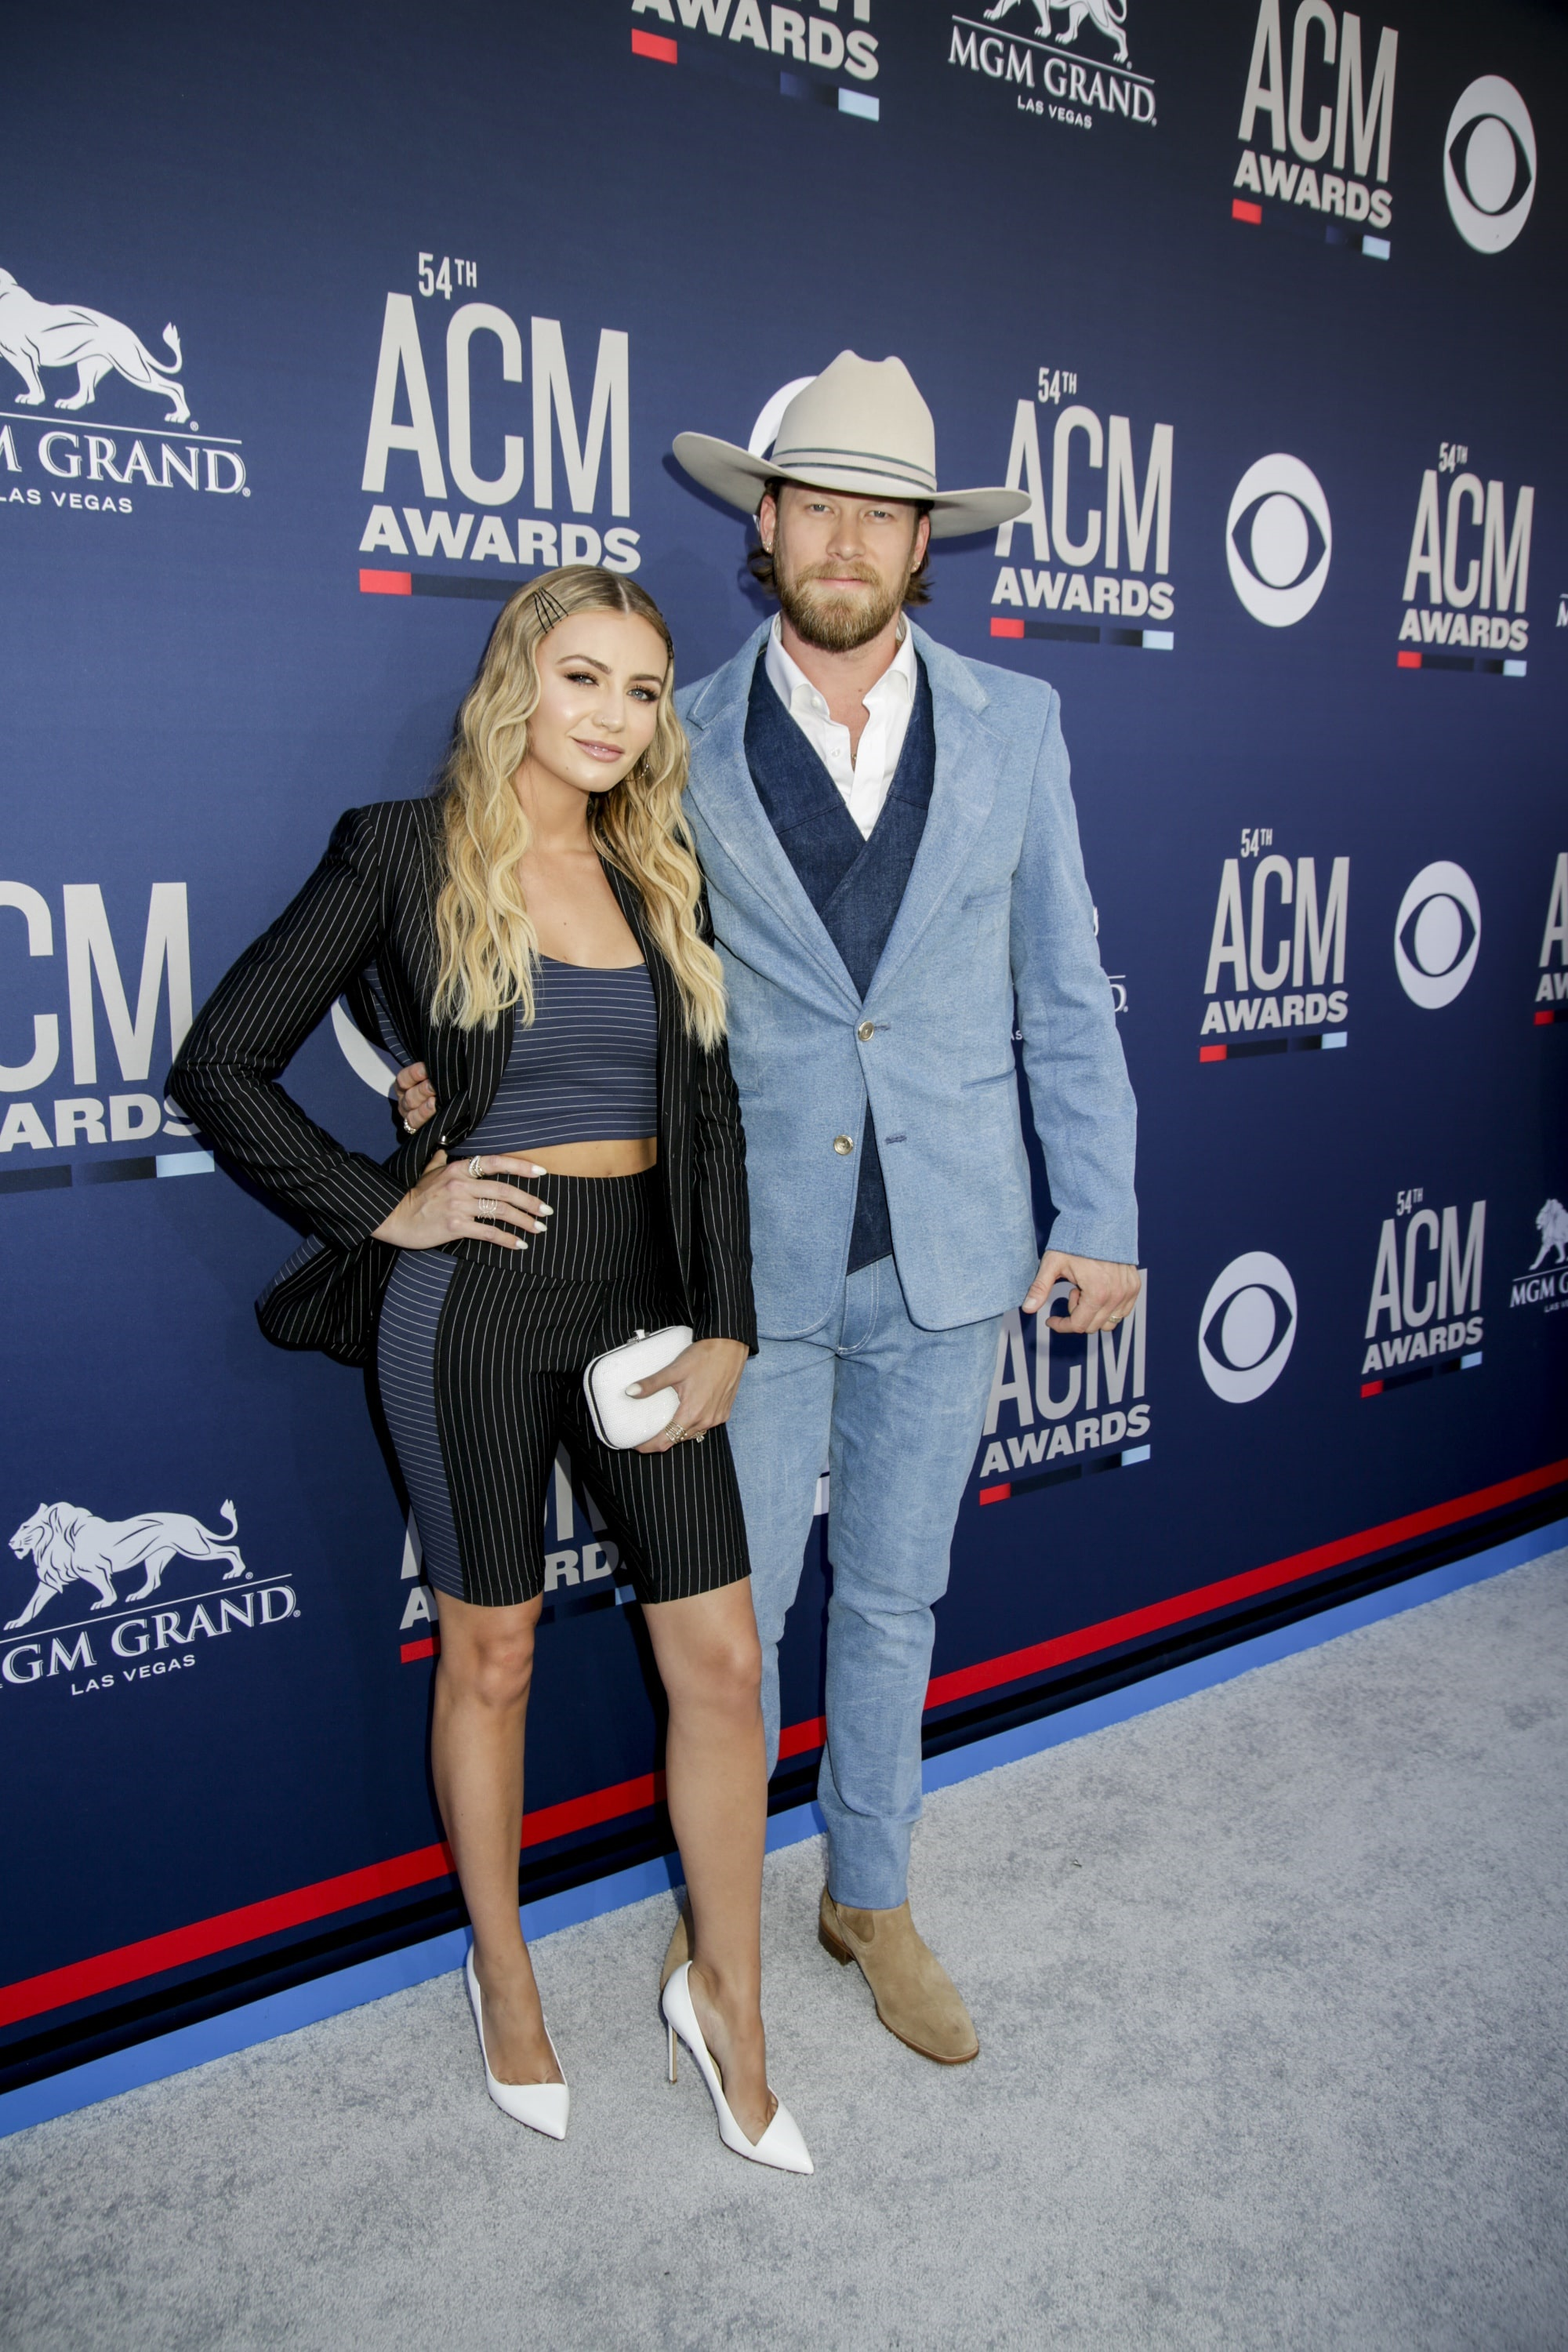 Brittney Kelley and Brian Kelley from the Georgia Florida Lines attends the 54TH ACADEMY OF COUNTRY MUSIC AWARDS, to broadcast LIVE from MGM Grand Garden Arena in Las Vegas Sunday, April 7, 2019 (8:00-11:00 PM, ET/delayed PT) on the CBS Television Network. Photo: Francis Specker/CBS ©2019 CBS Broadcasting, Inc. All Rights Reserved.